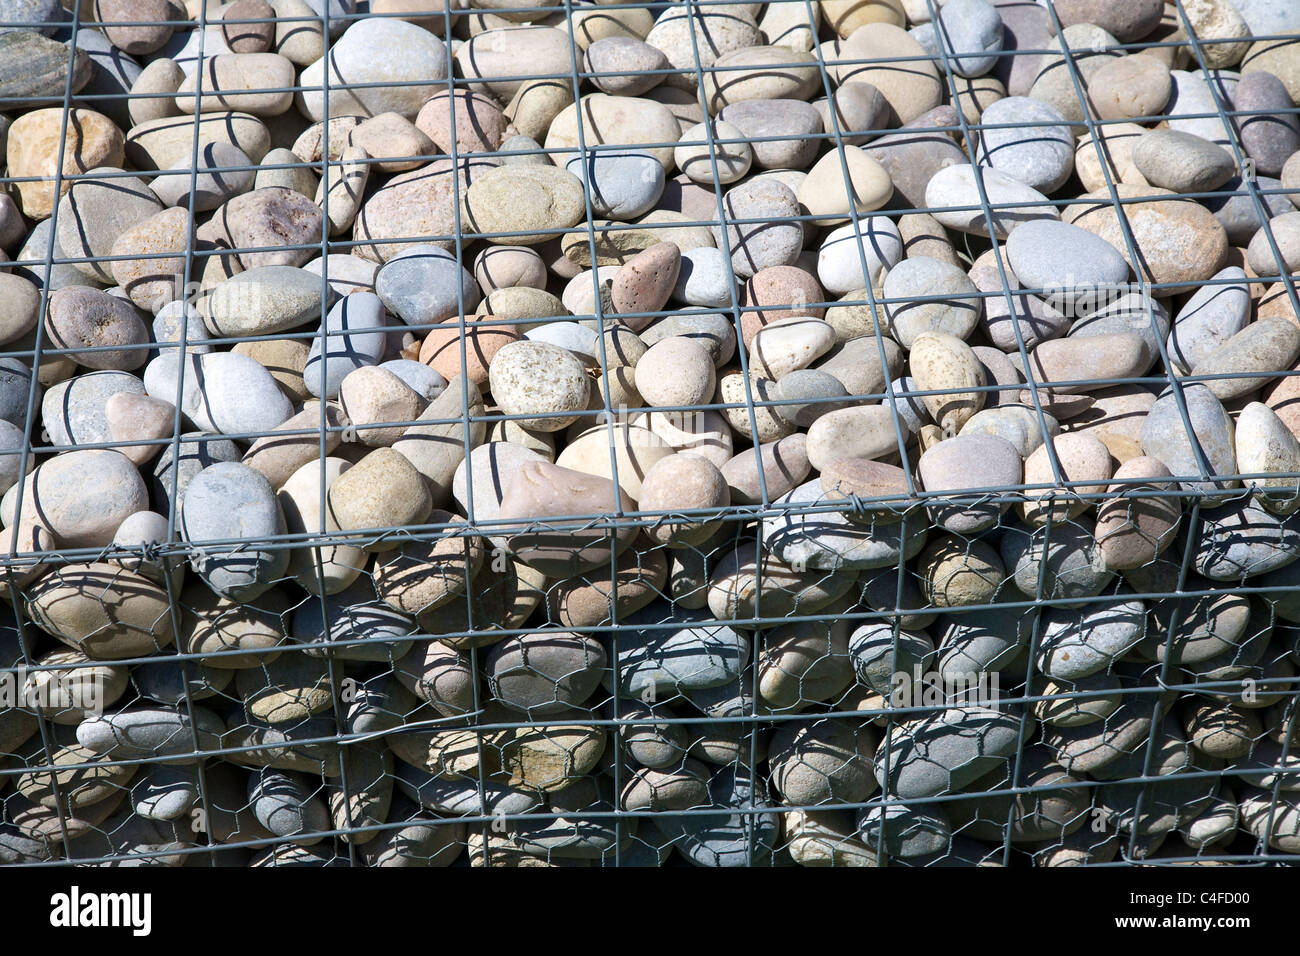 Gabion Cages Stock Photos Amp Gabion Cages Stock Images Alamy